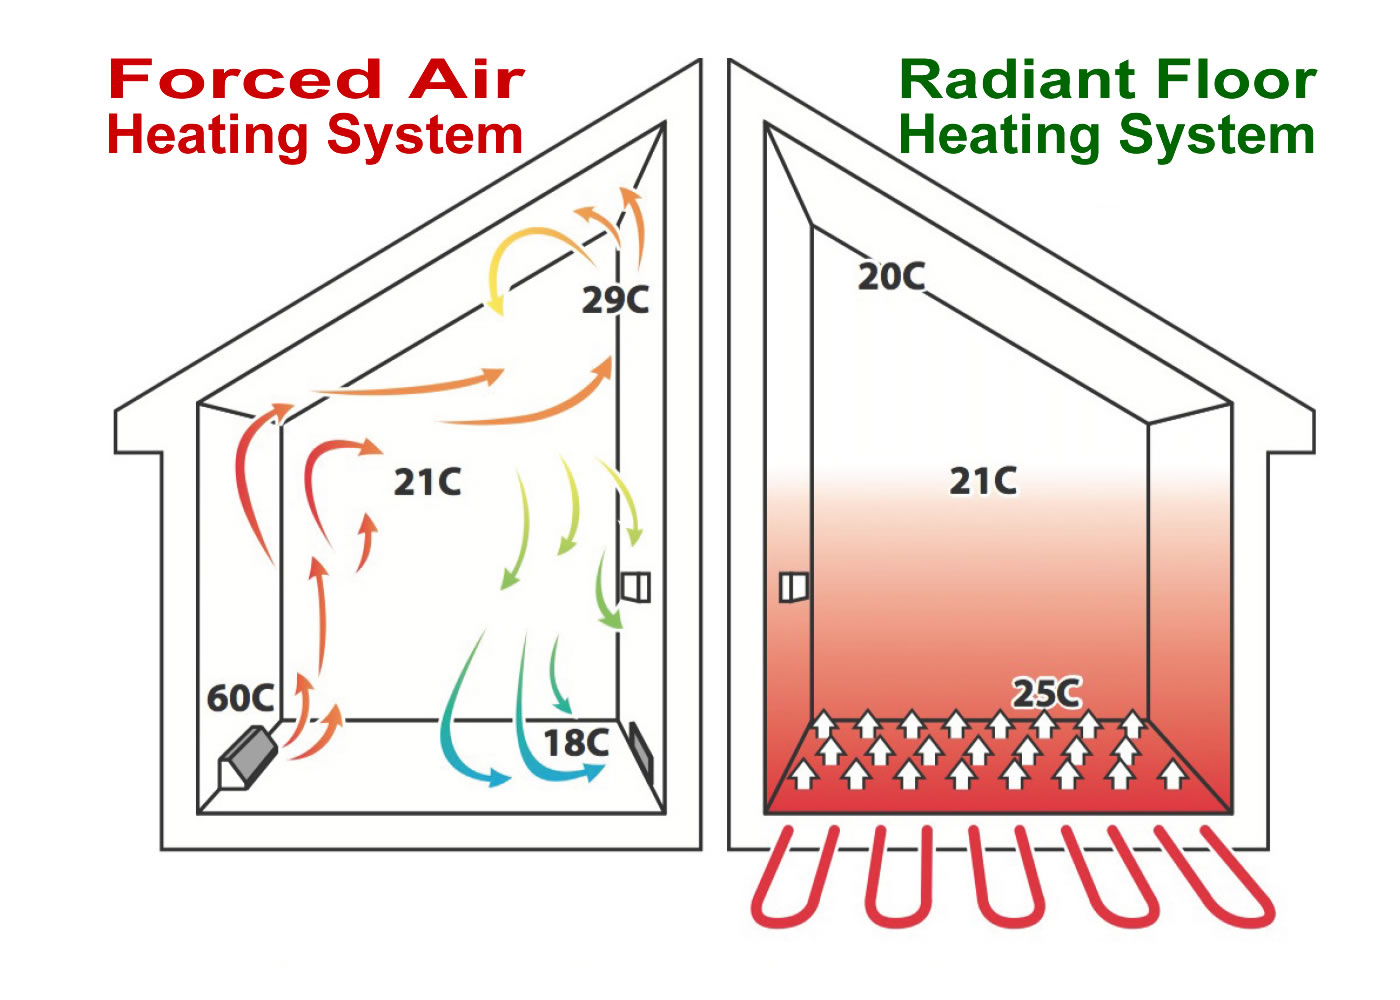 Forced air heating system vs radiant floor heating systems form Thompson Electrical in MArlborough NZ